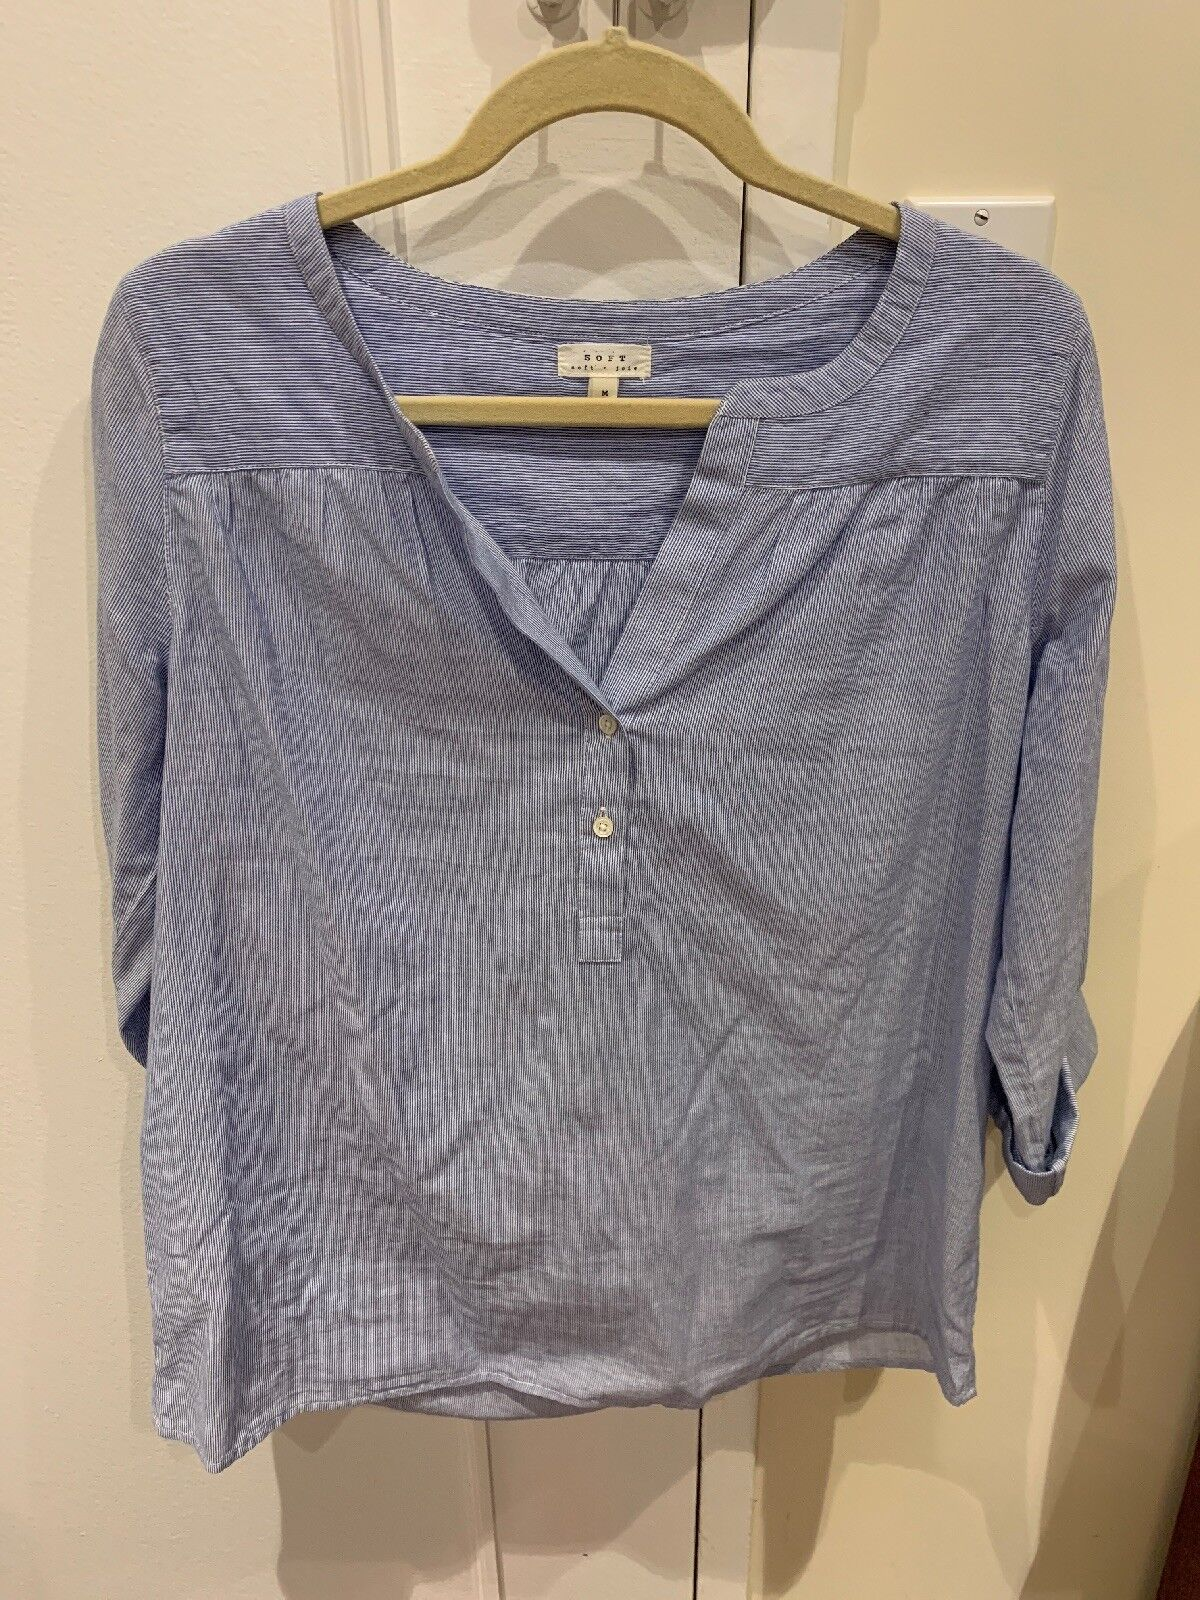 NWOT Soft Joie Pin Striped Long Sleeve Top, Größe M